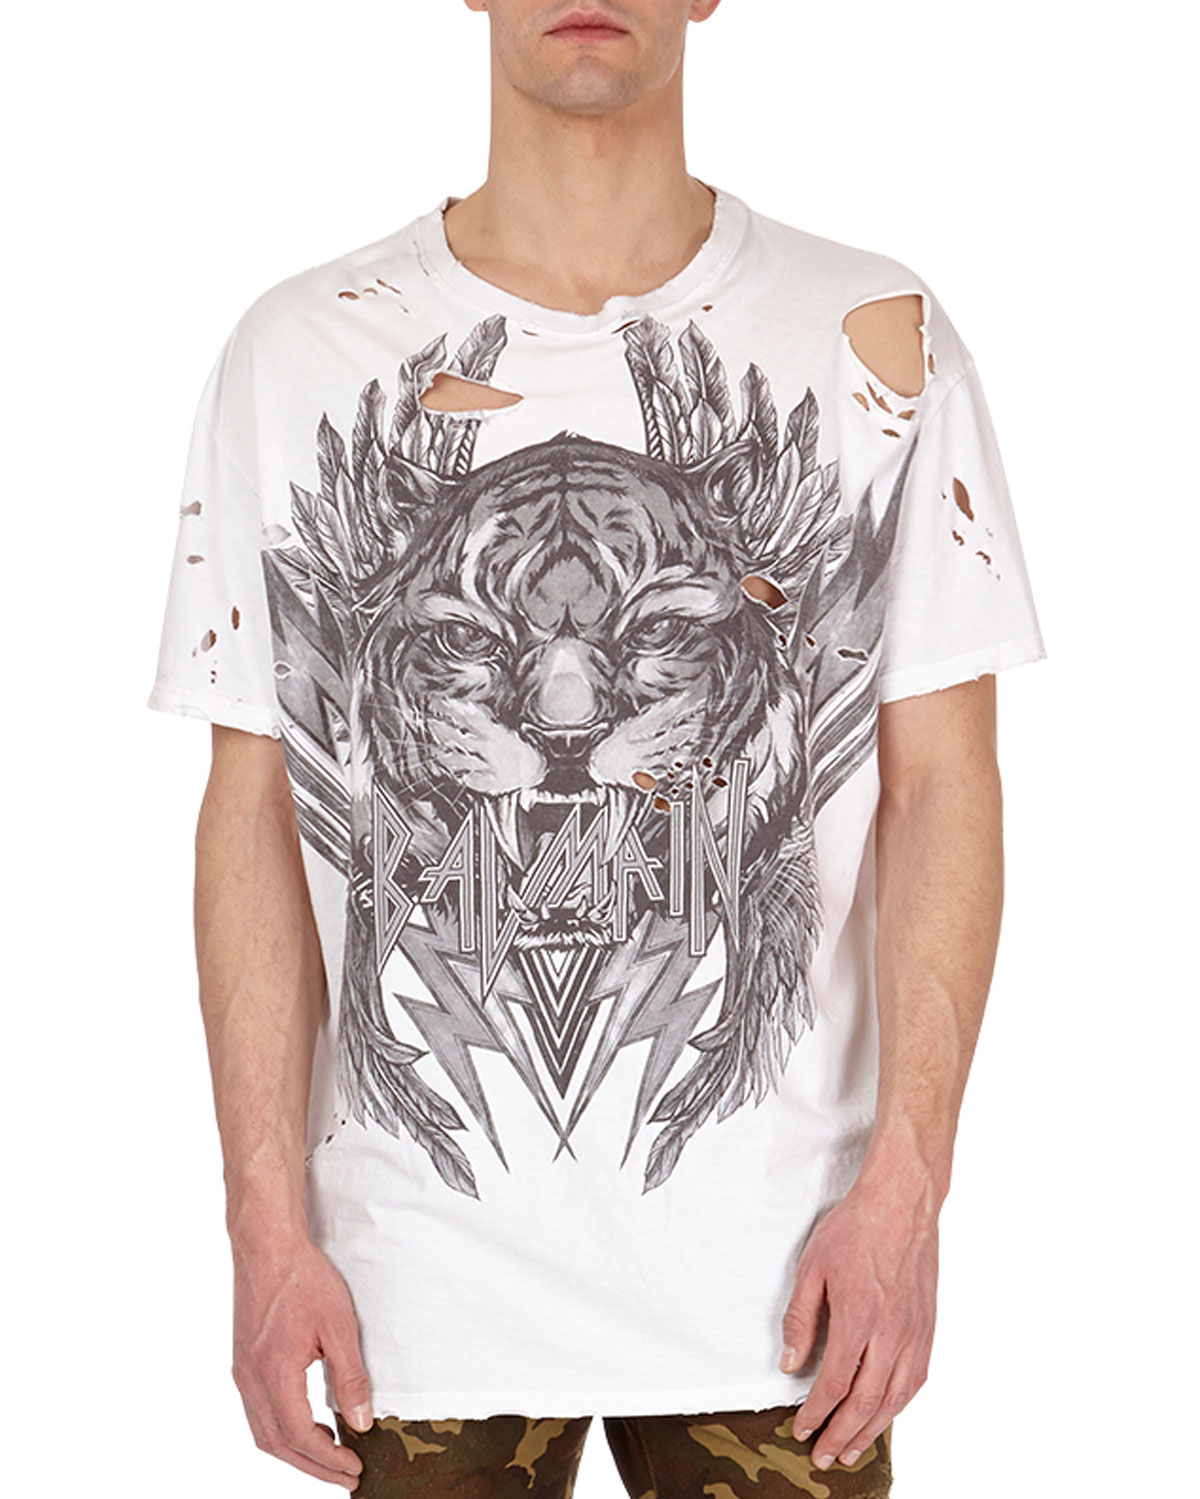 Distressed Tiger Head Logo T-Shirt, White